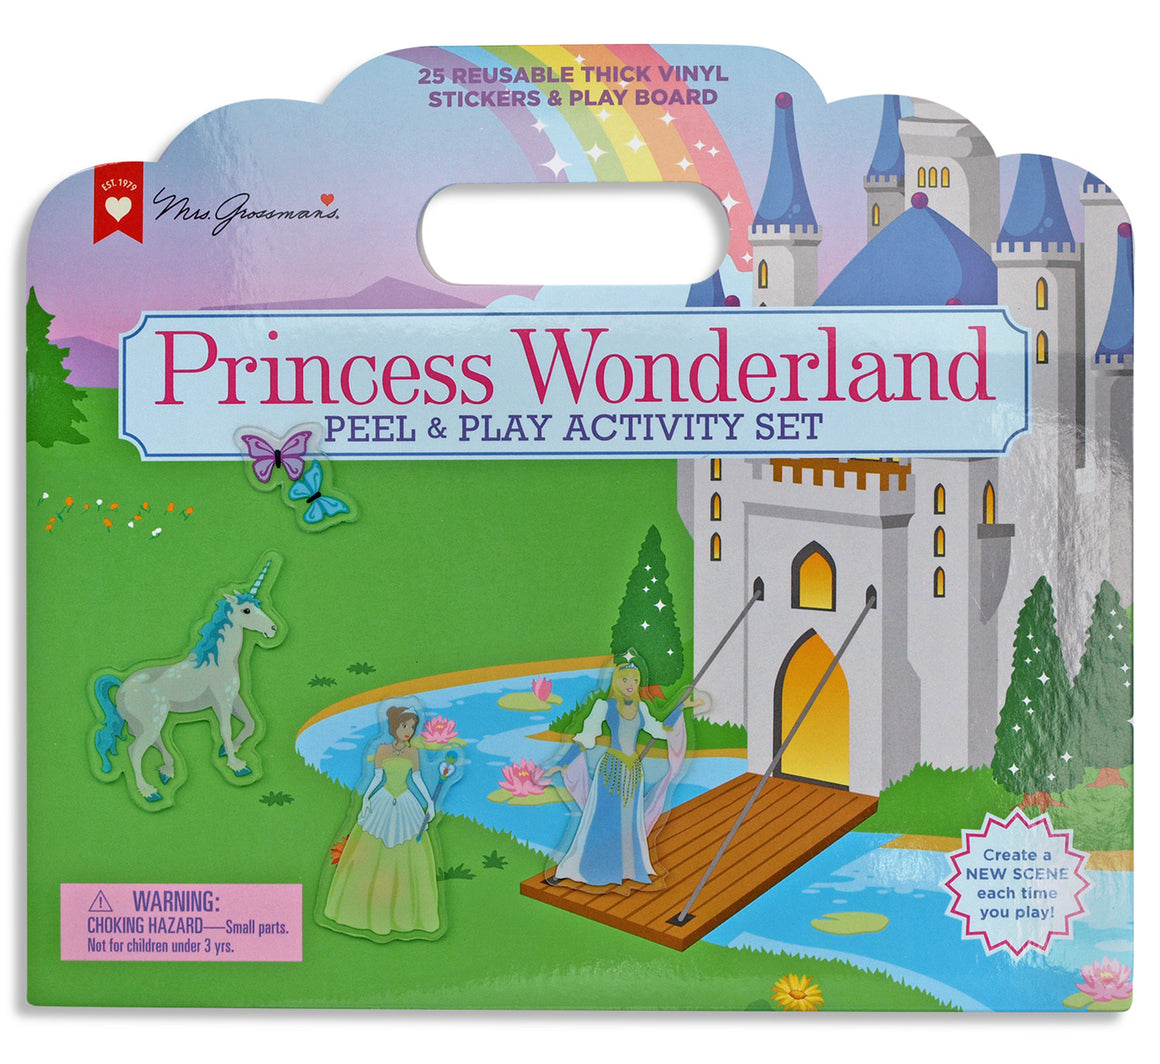 Princess Wonderland Peel and Play Activity Set - Mrs. Grossman's